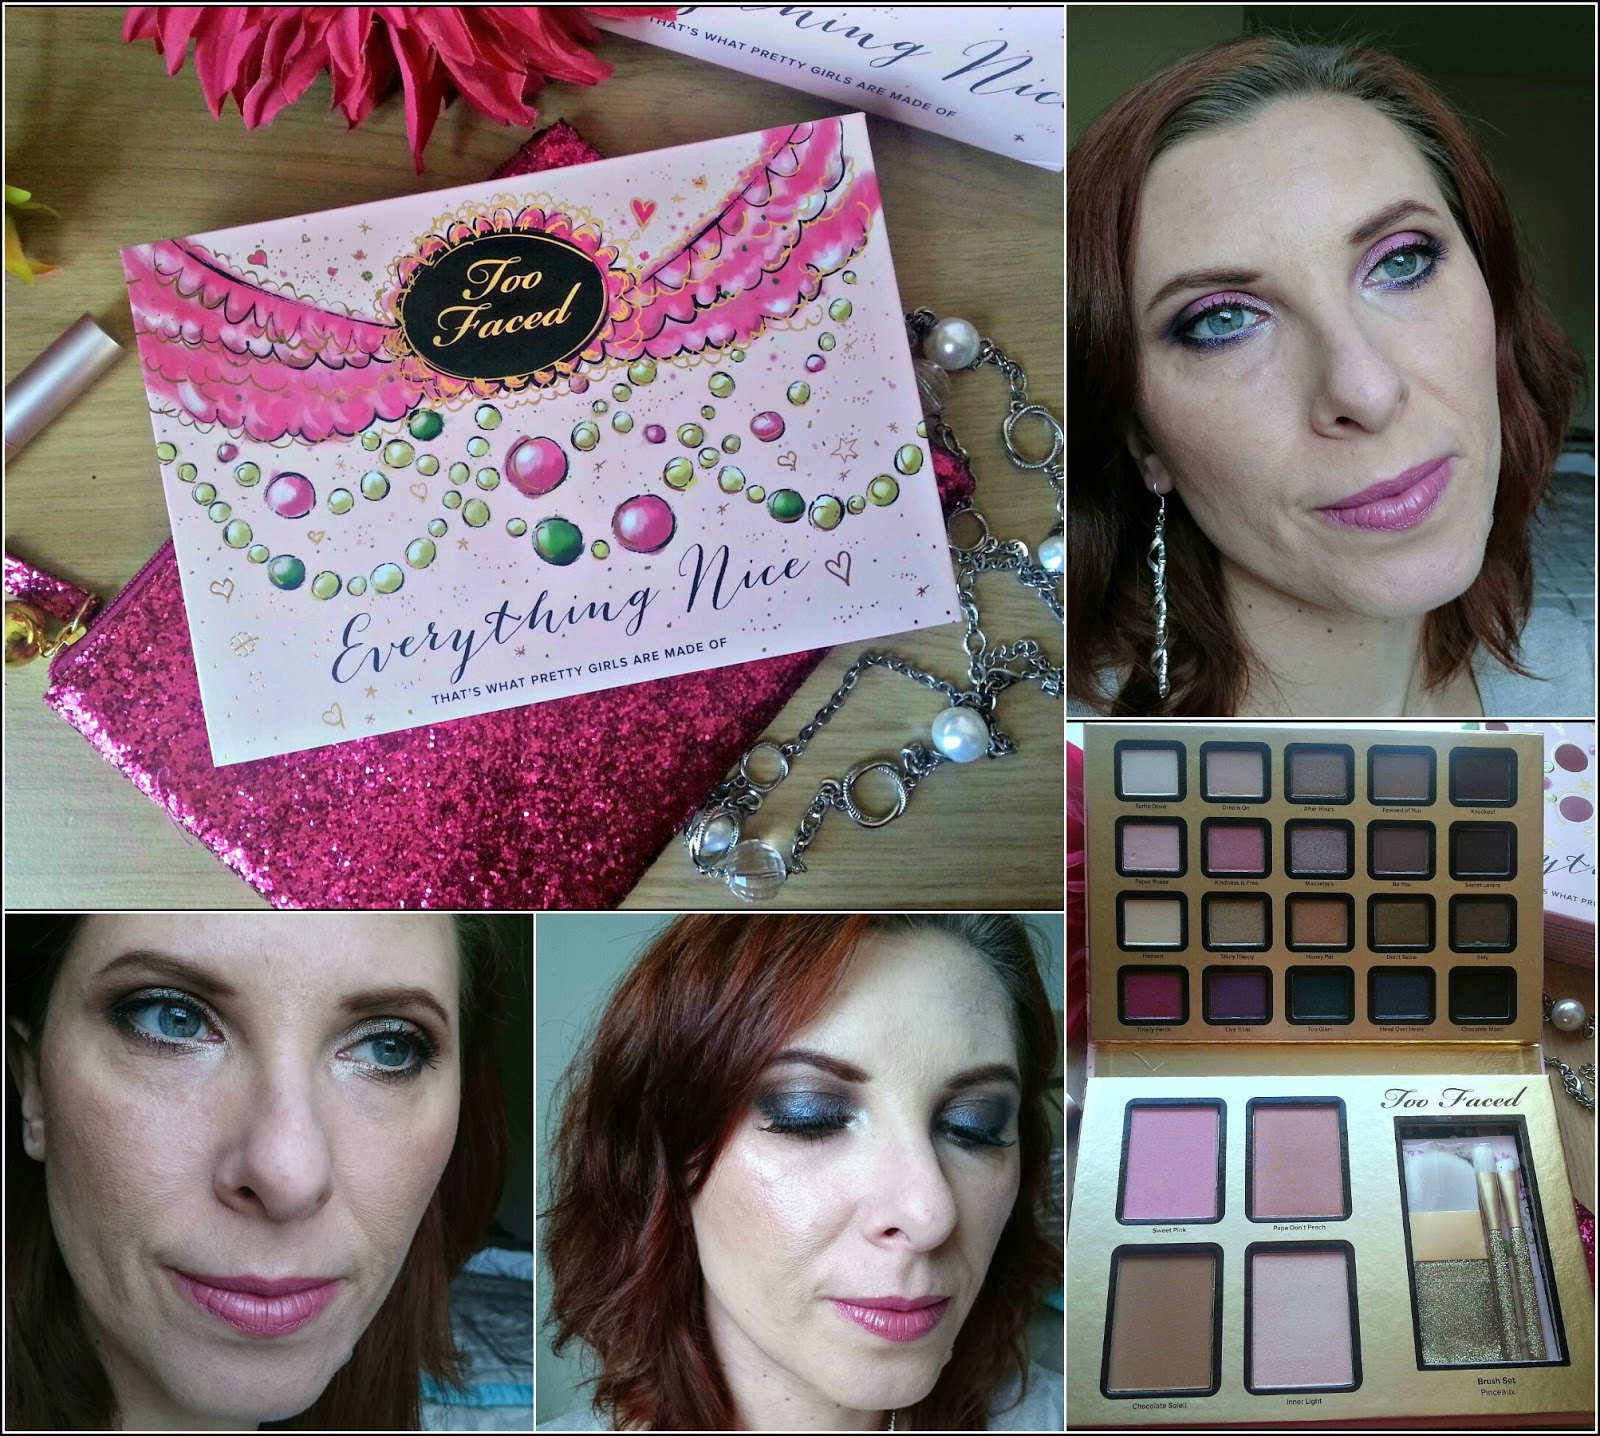 Too faced Everything Nice palette - makeup looks